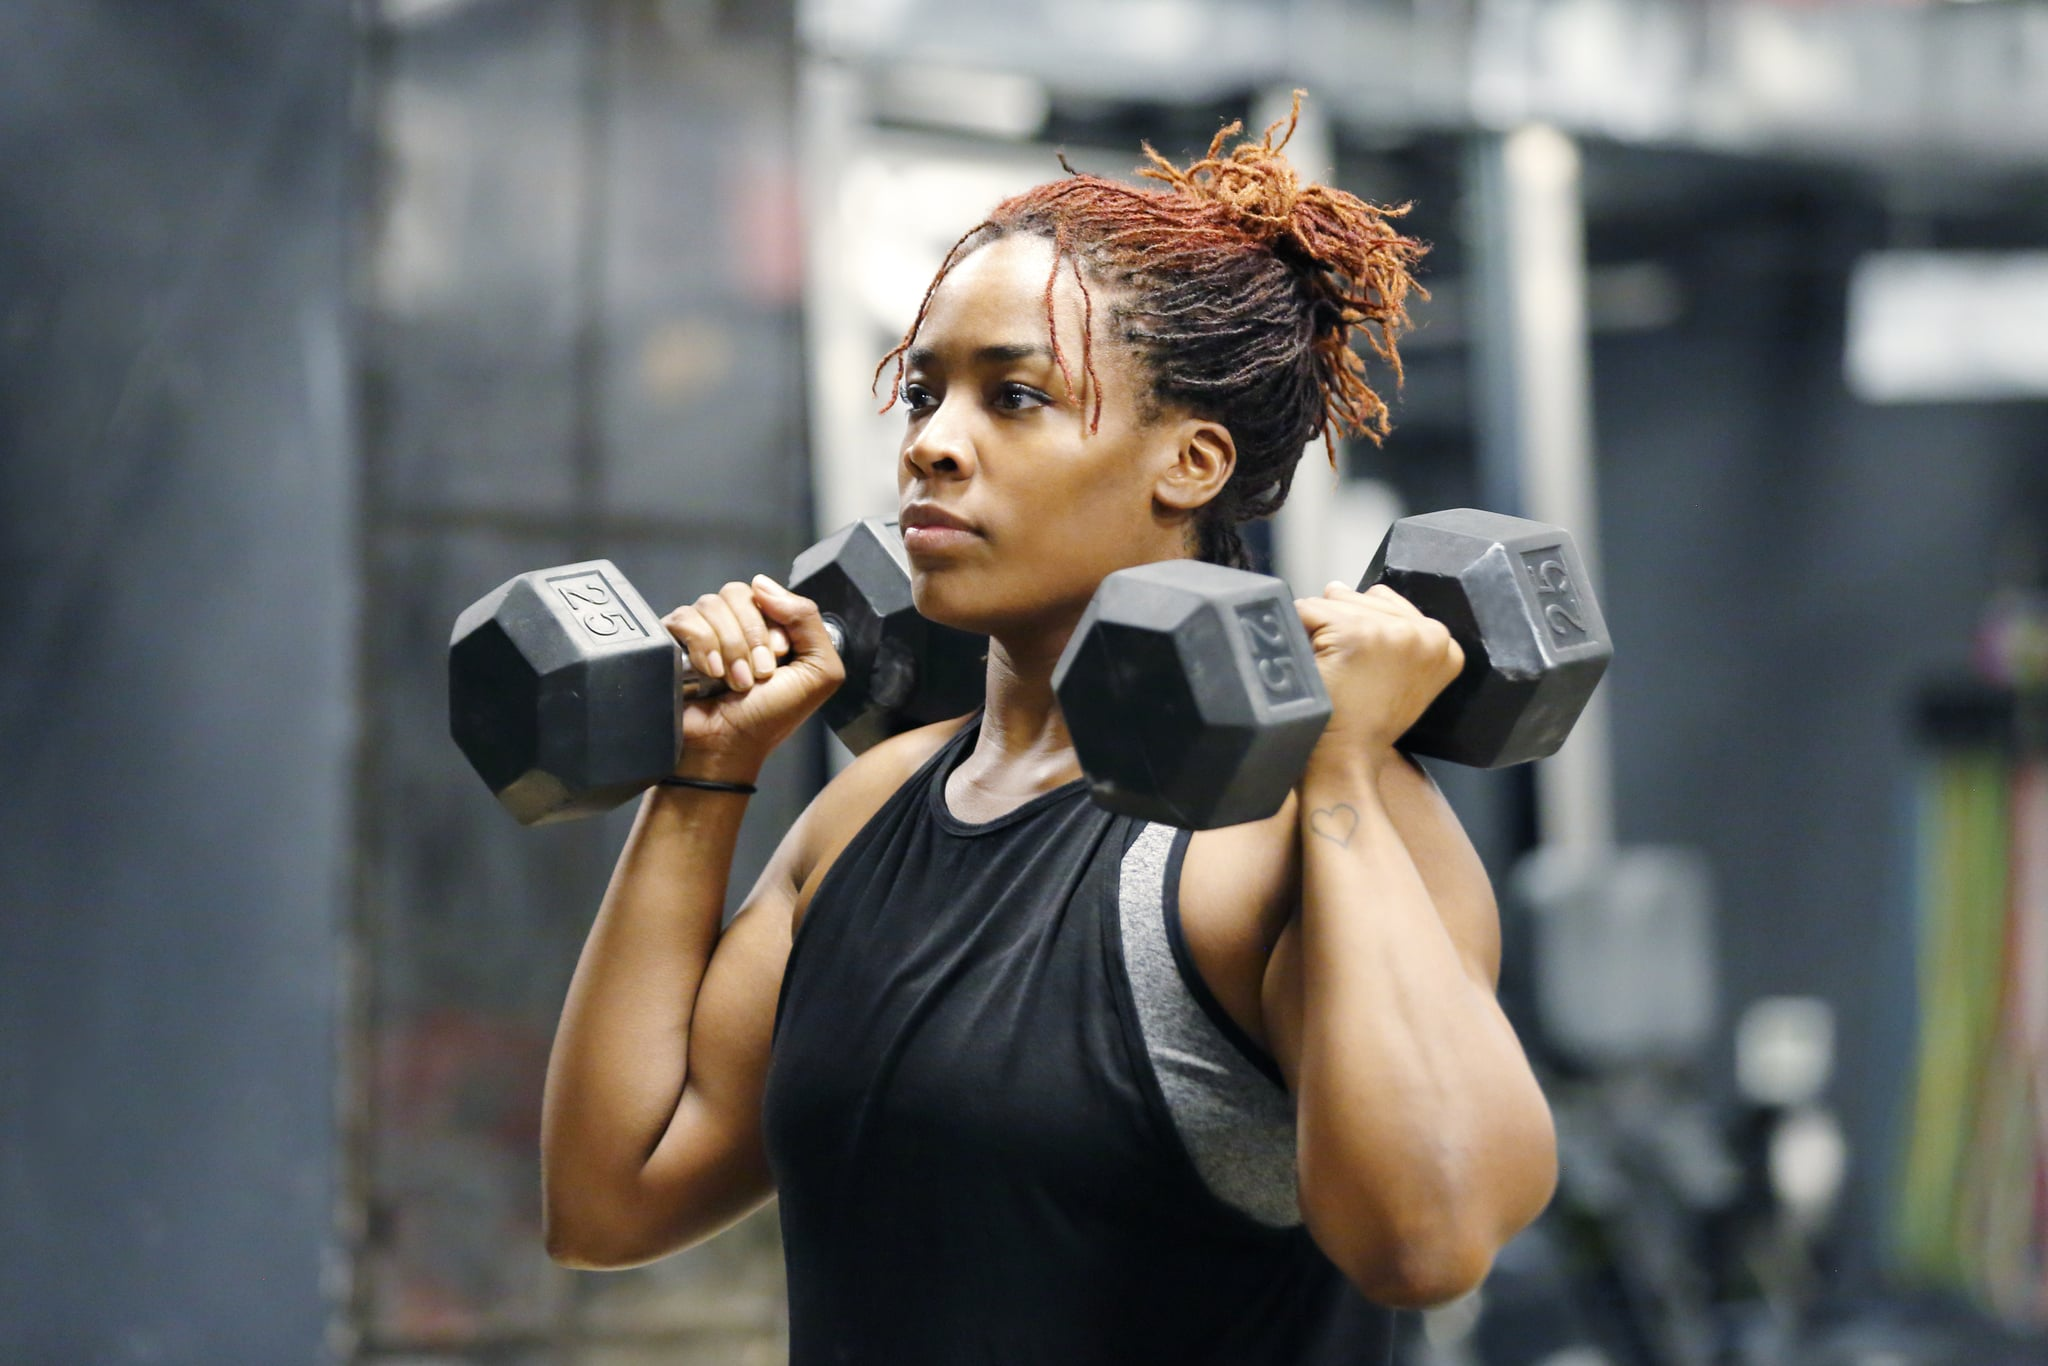 Wasit up image of a fit, young African American woman working out with hand weights in a fitness gym.